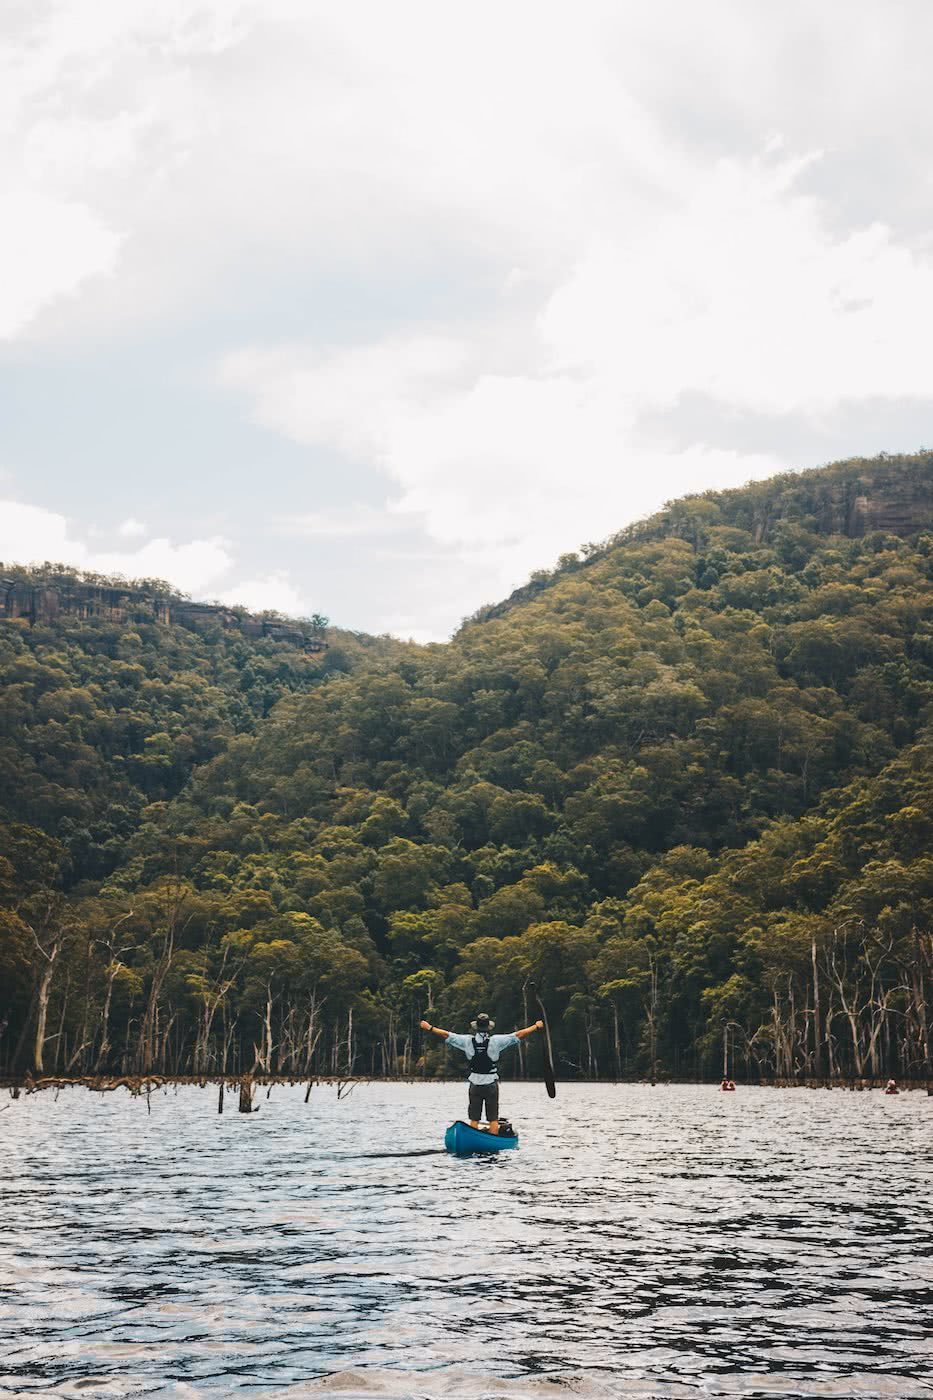 When Everything Flows // Kangaroo Valley Canoeing Escape, Aron Hailey, joy, canoe, river, awe, arms out, trees, forest, hike club series